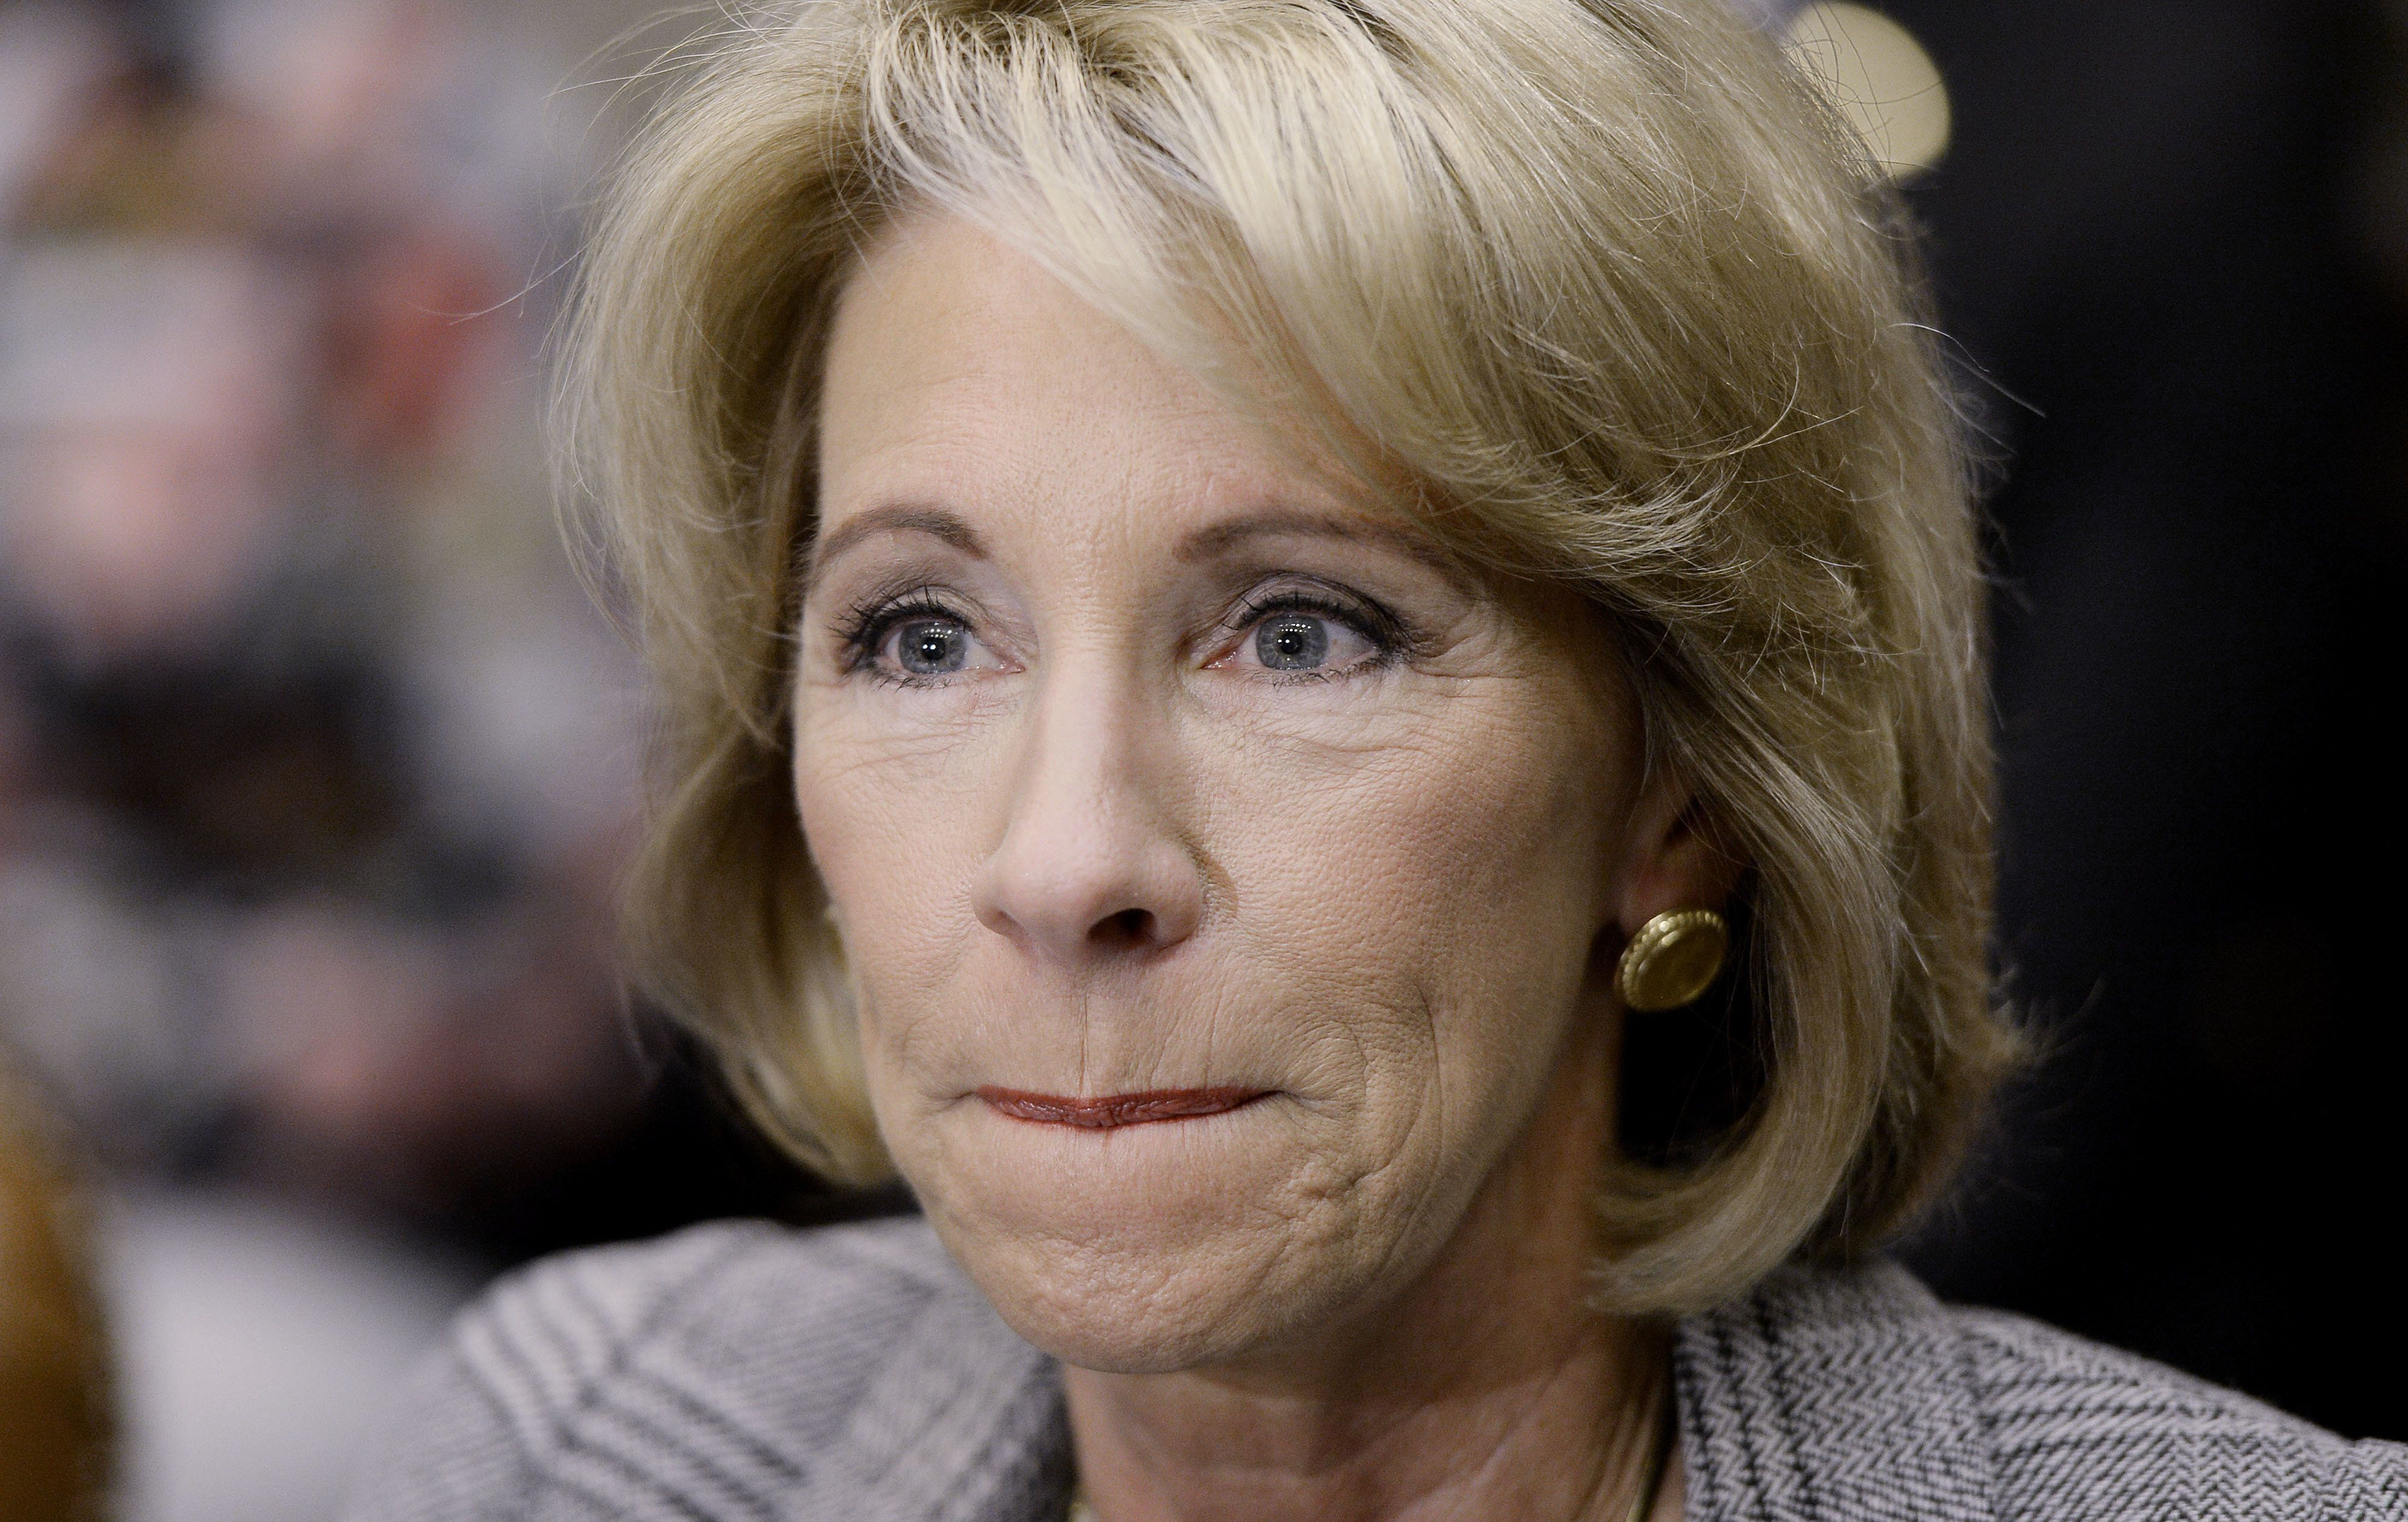 Betsy DeVos commented on her recent visit toJefferson Academy in Washington, D.C.